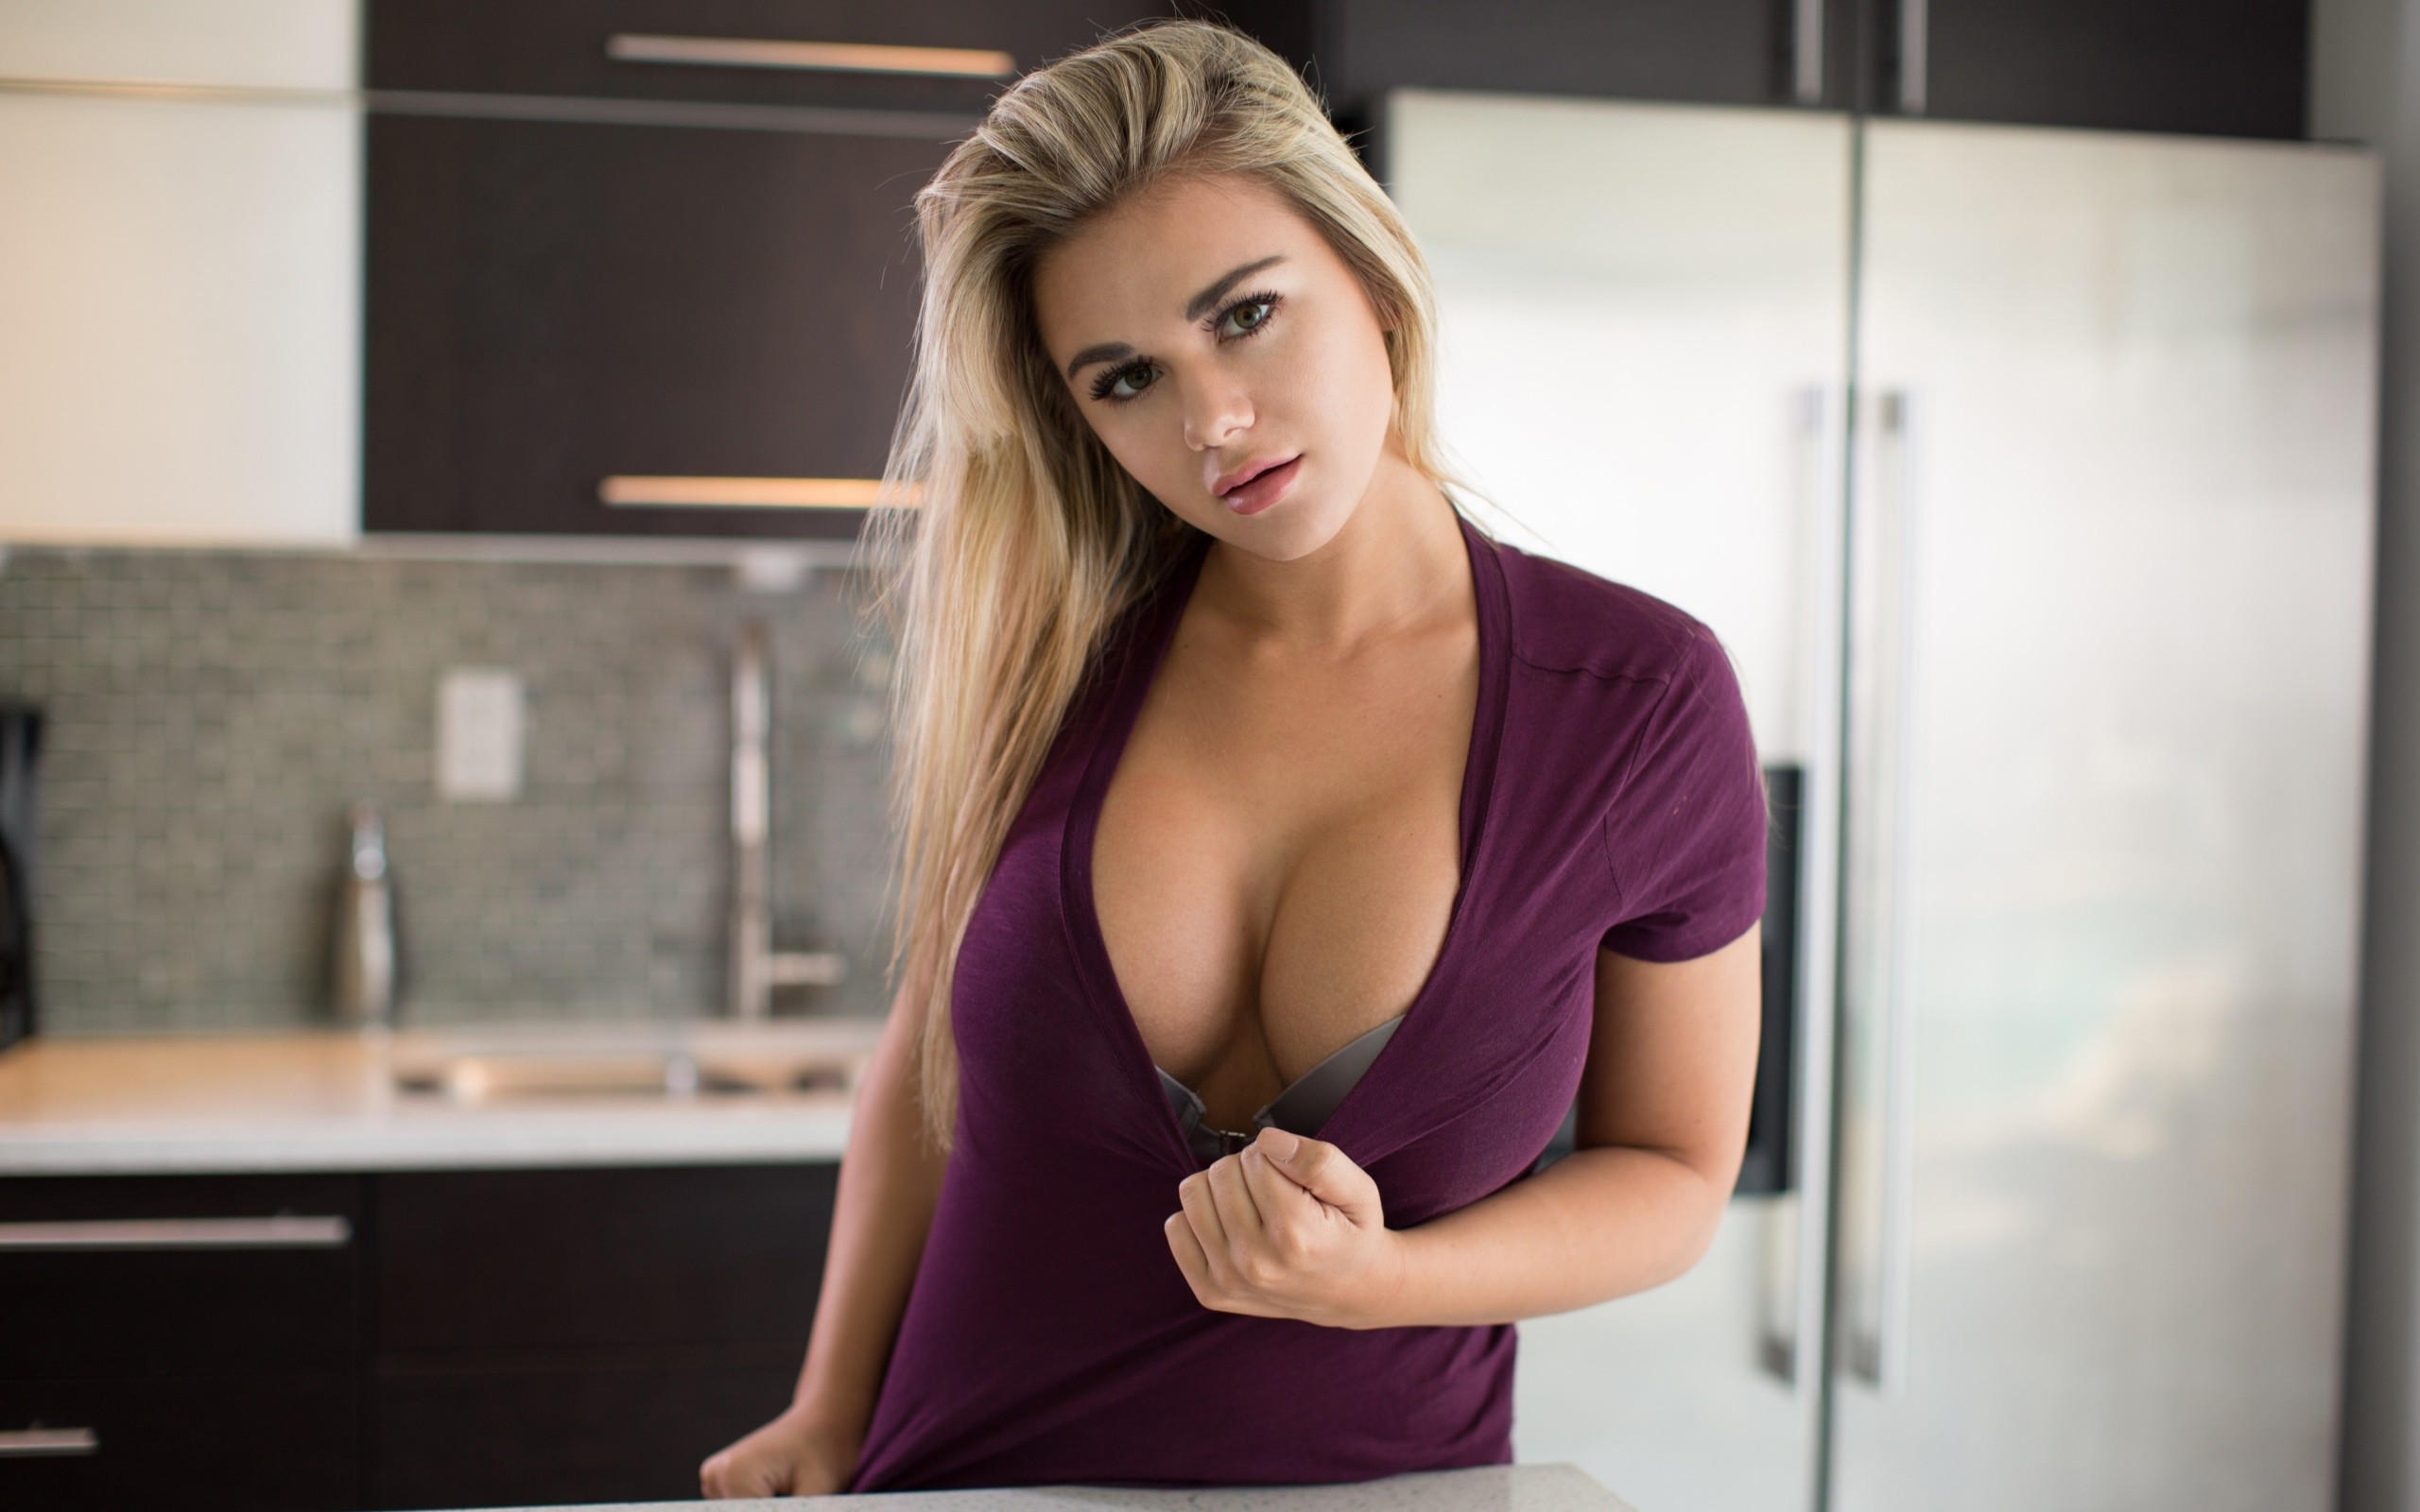 People 2560x1600 Tahlia Paris flashing lifting shirt cleavage bra